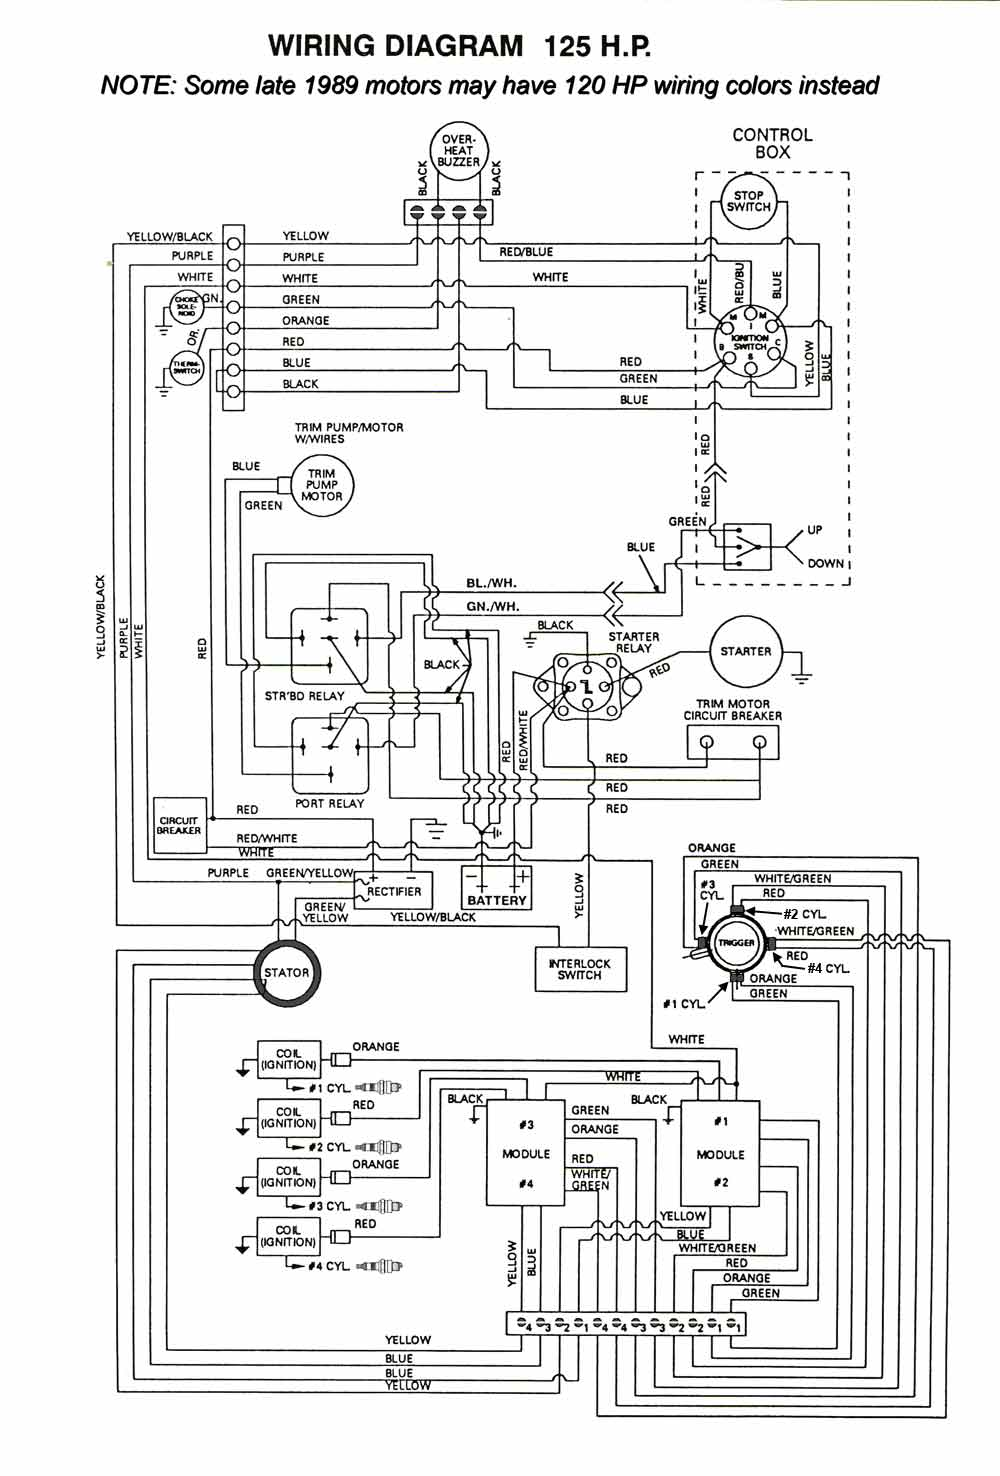 Chrysler Outboard Wiring Diagrams Mastertech Marine John Deere Ignition  Wiring Diagram 85 Hp Force Outboard Wiring